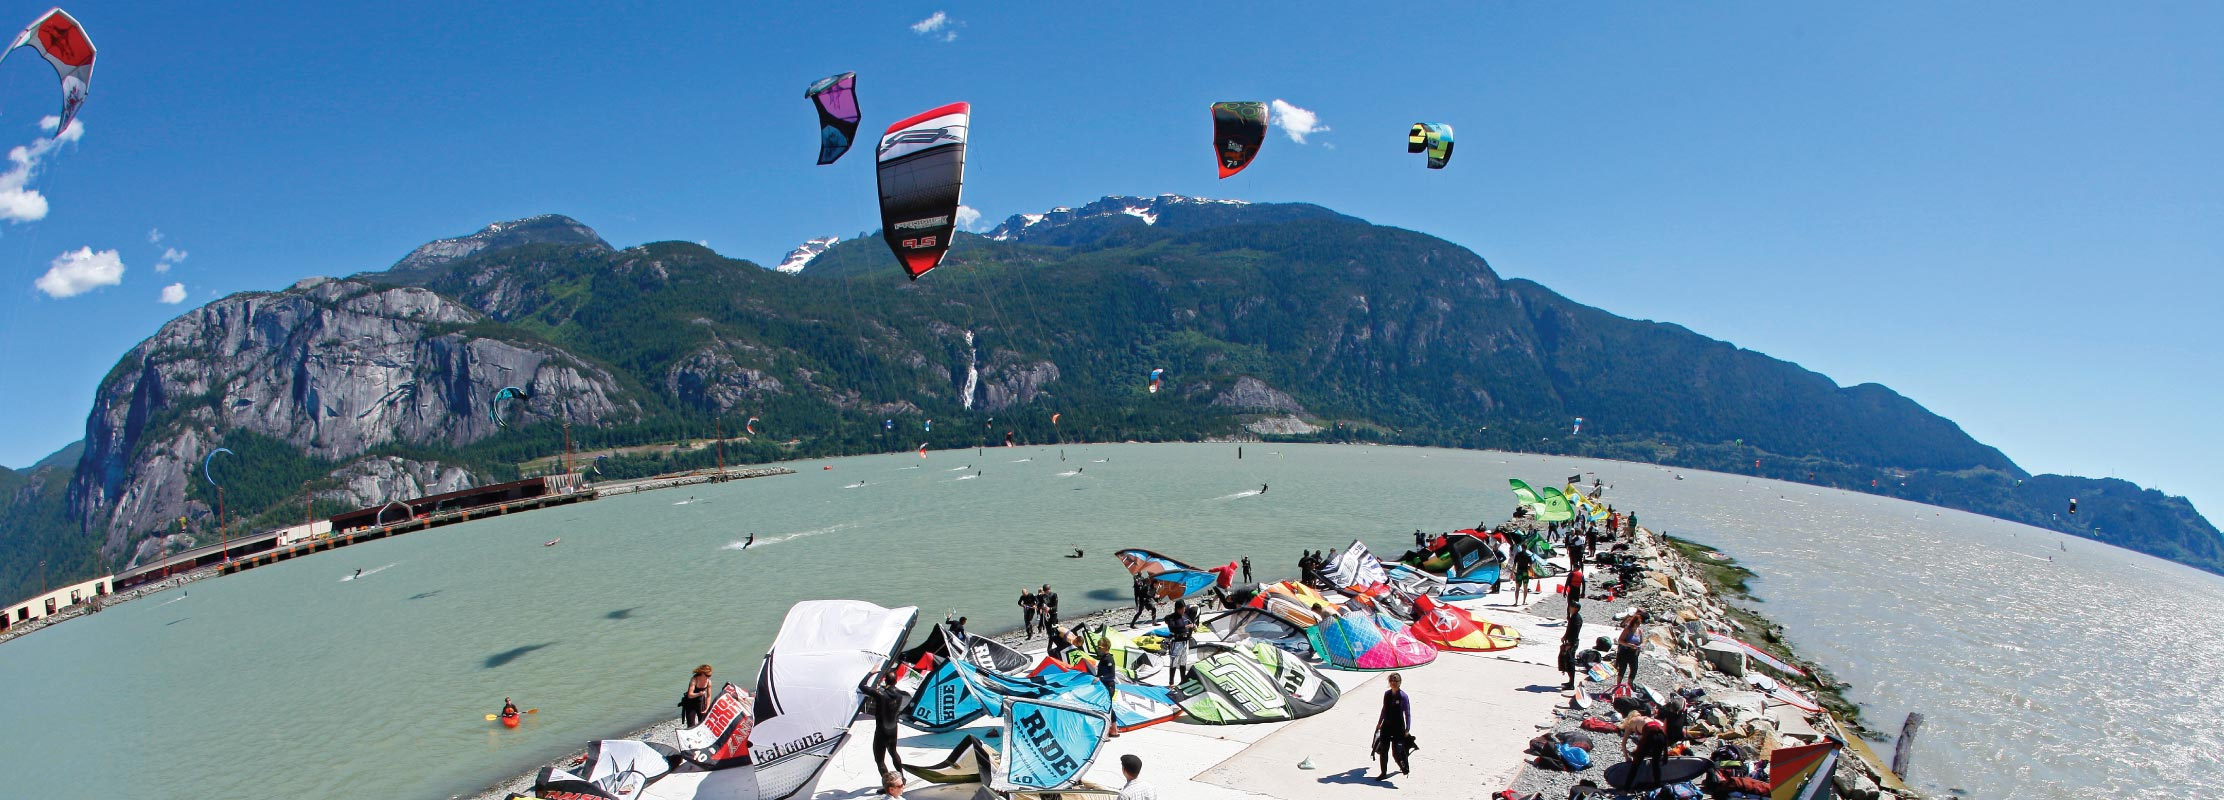 Kiteboarders at Squamish Spit